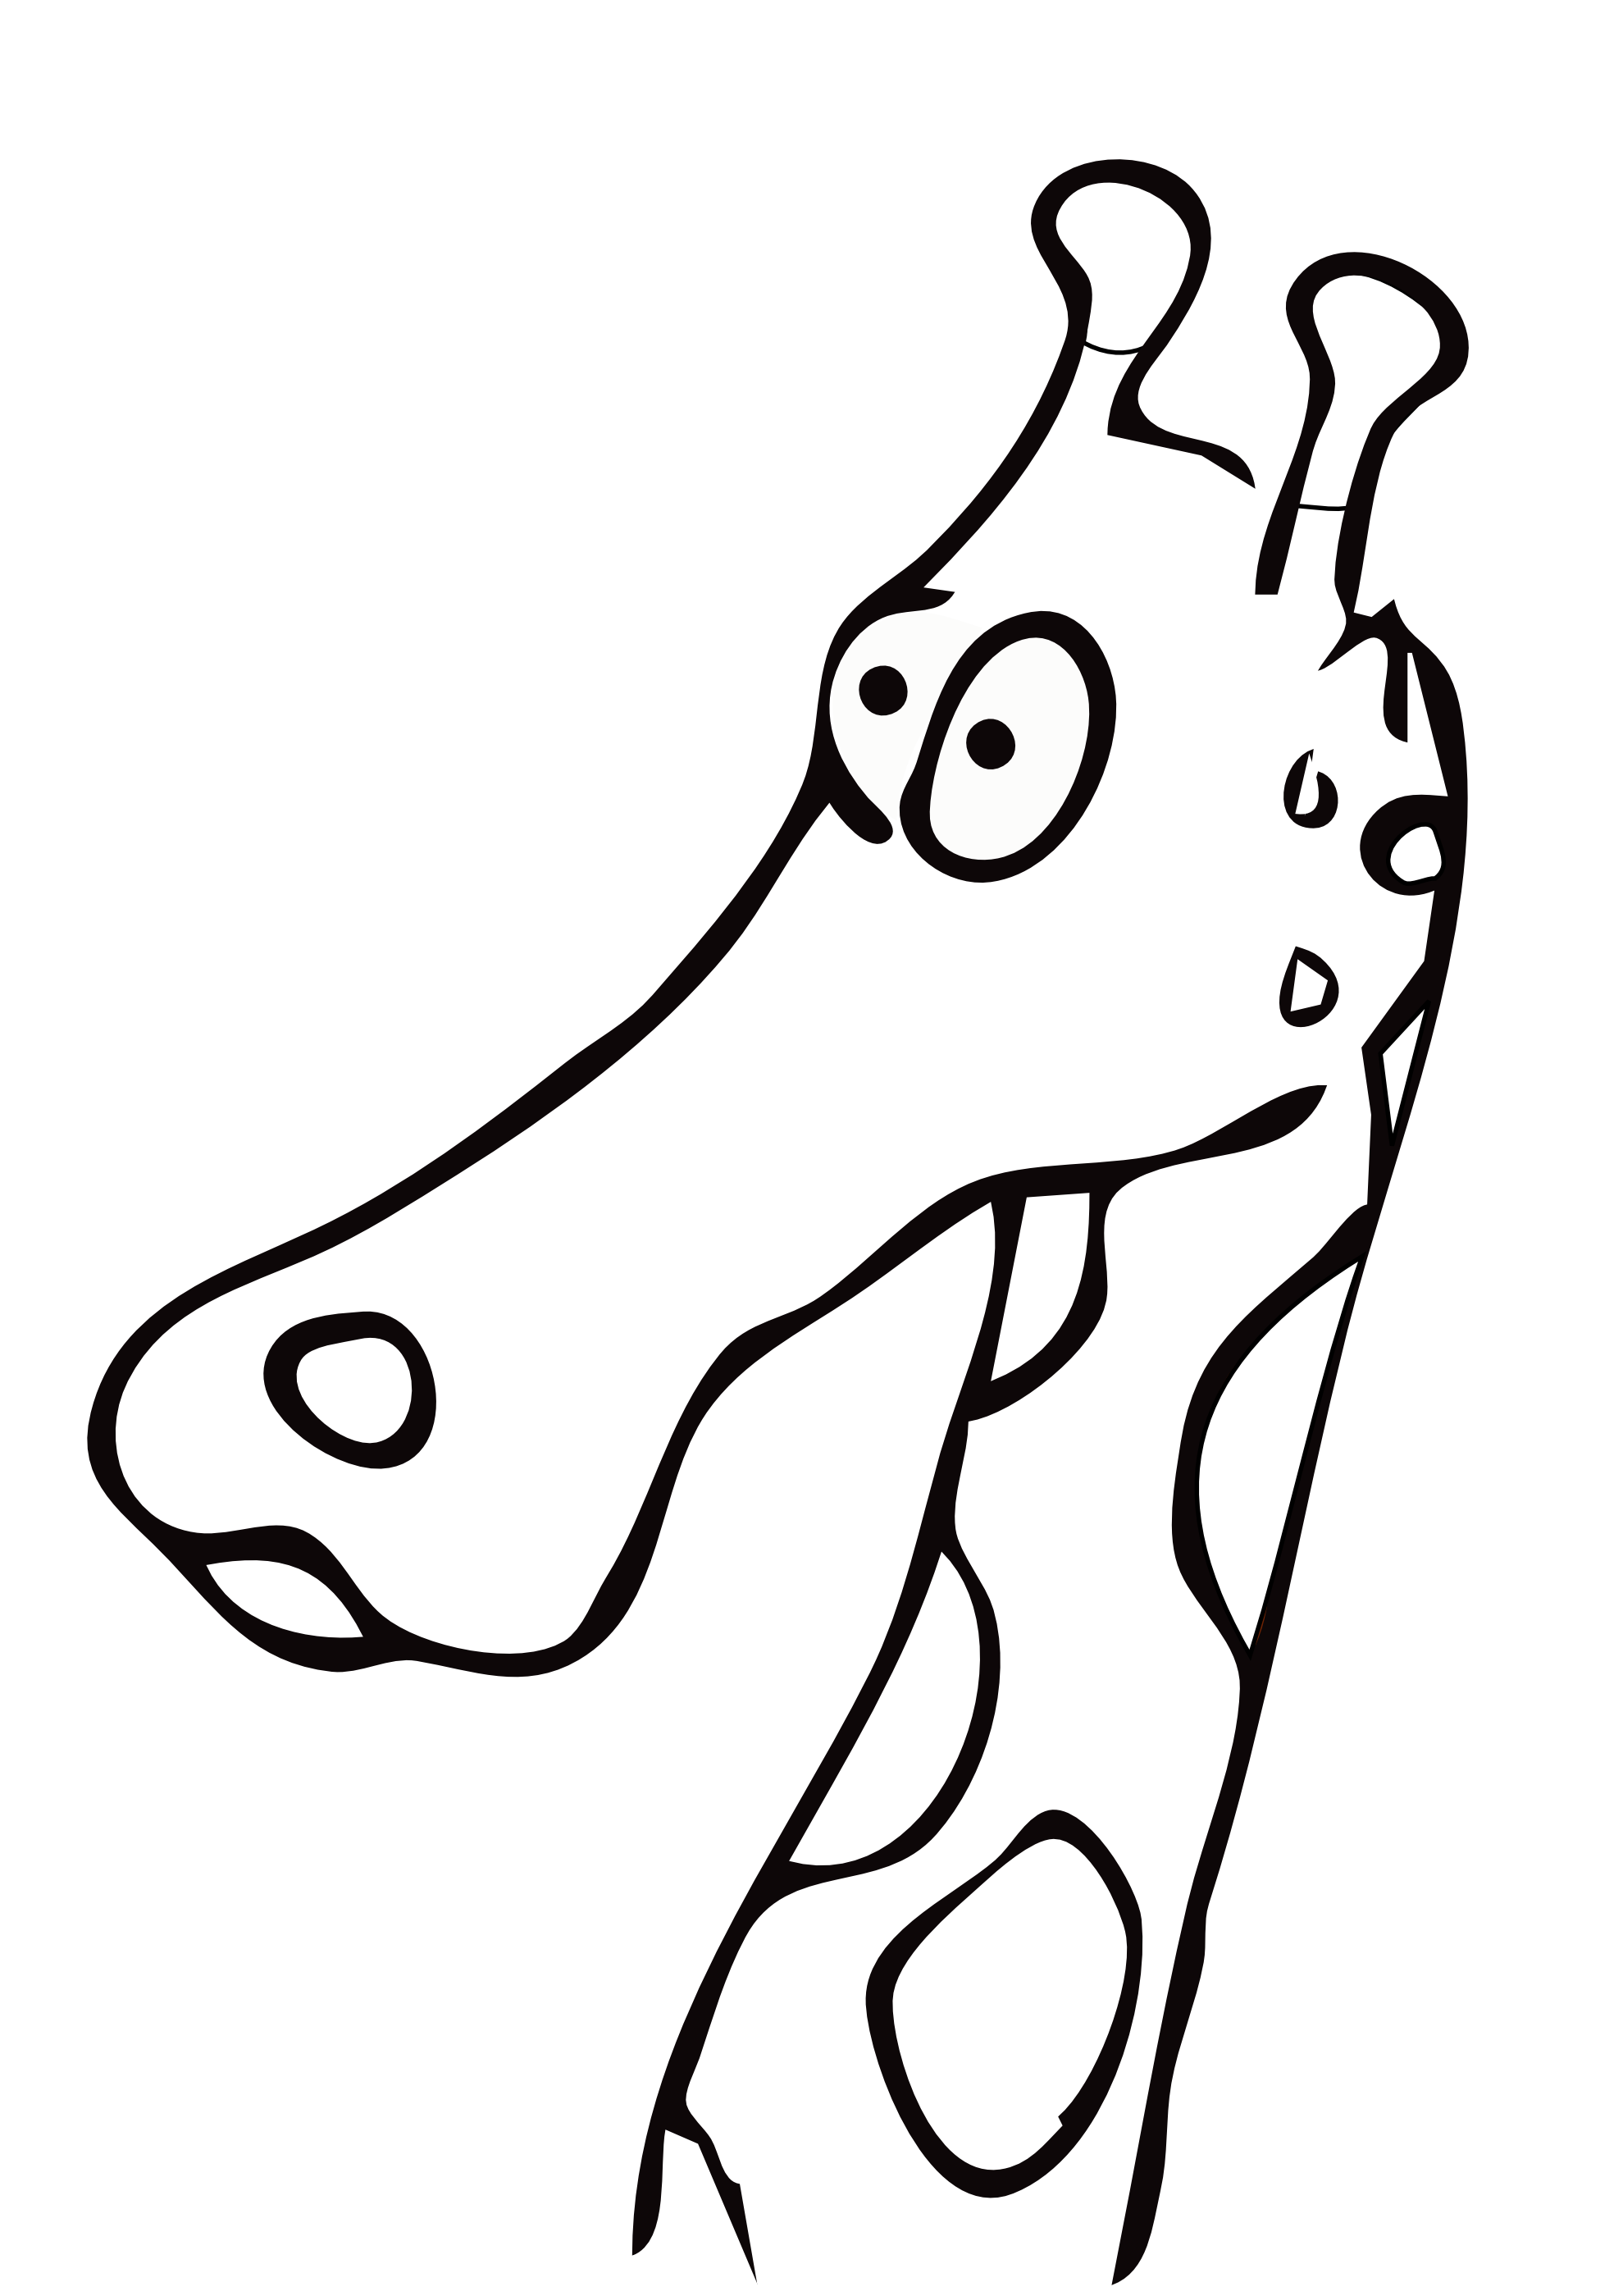 baby%20giraffe%20clipart%20black%20and%20white